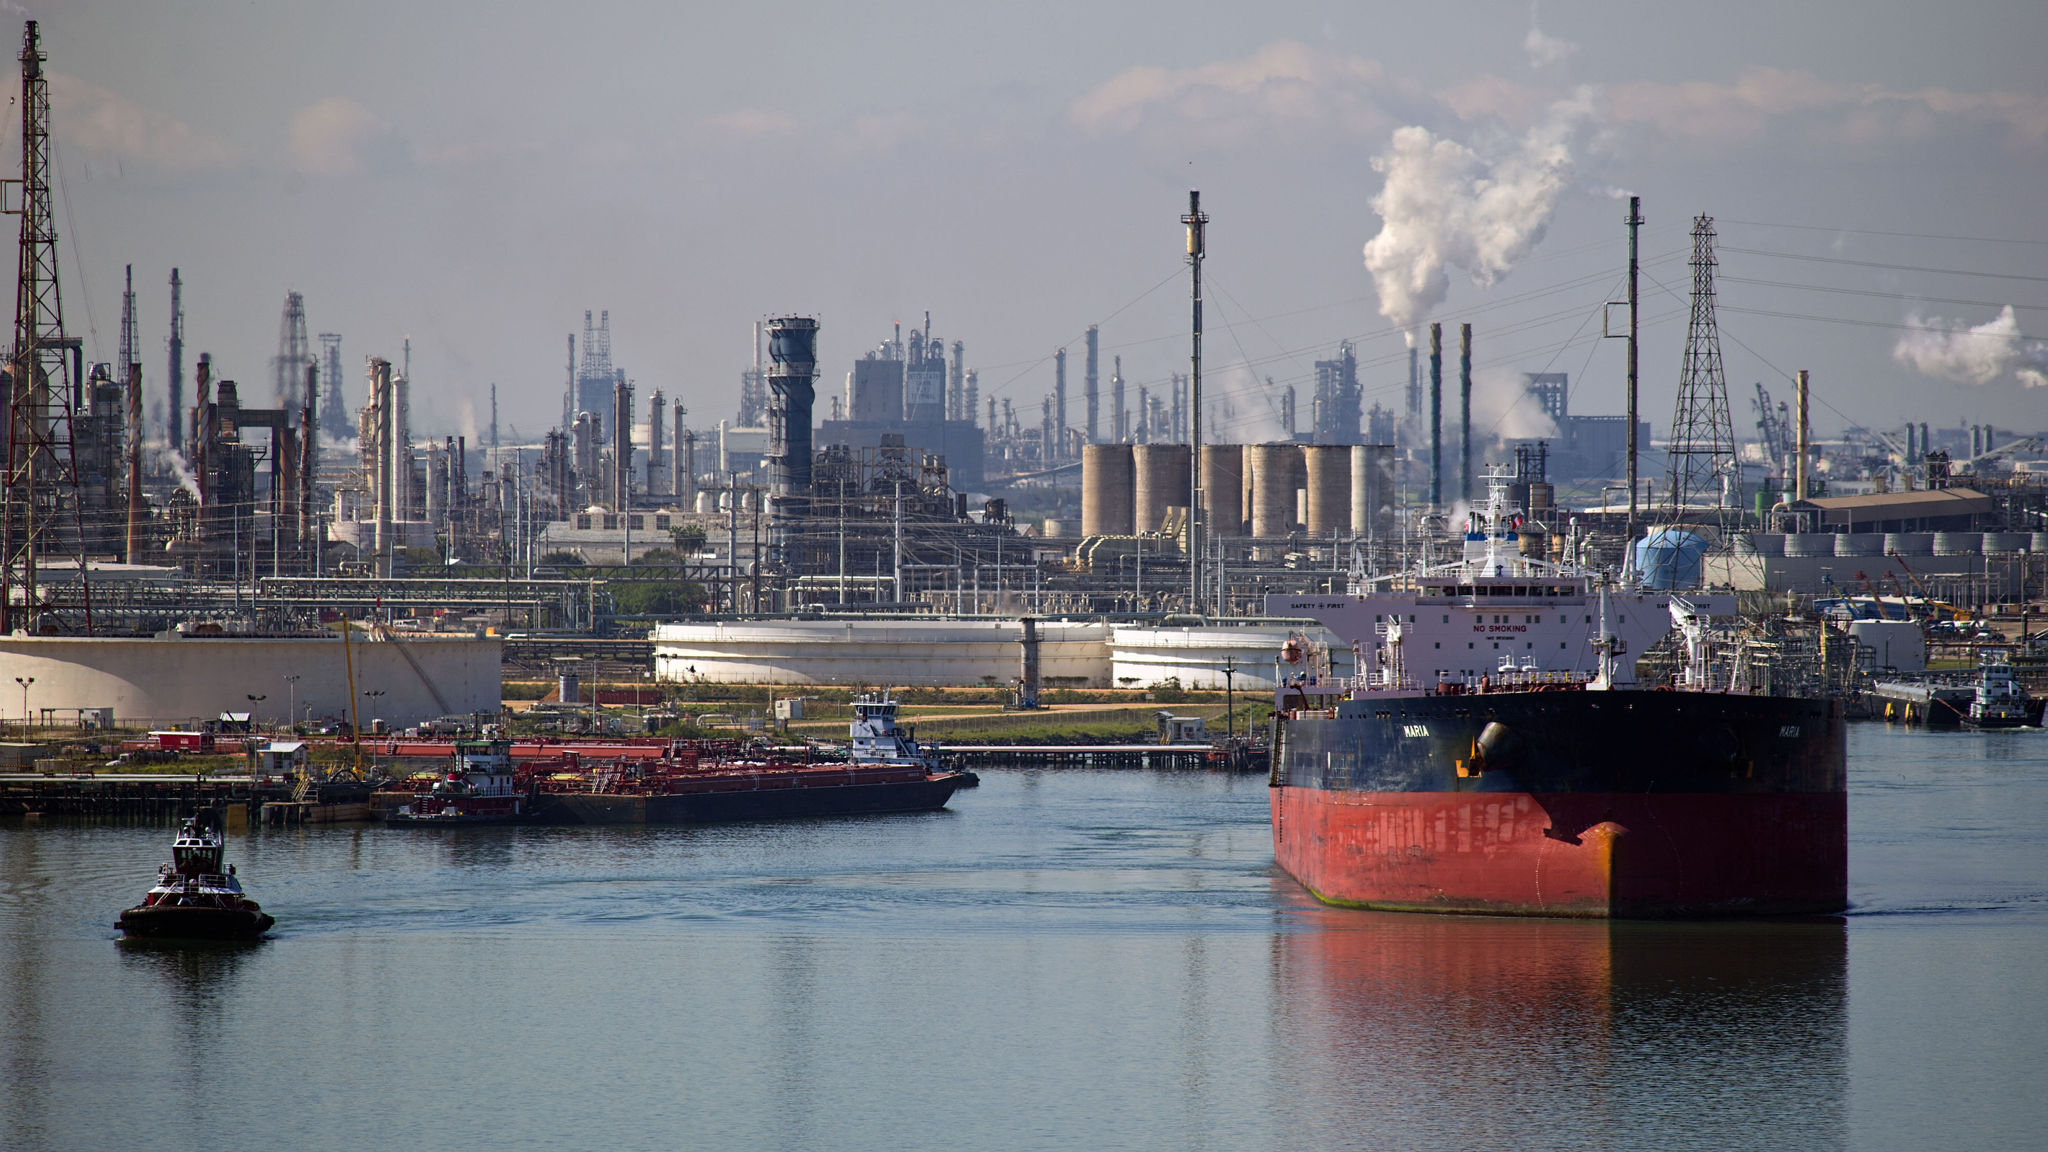 Oil tanker rates to stay high until year-end, says Euronav chief